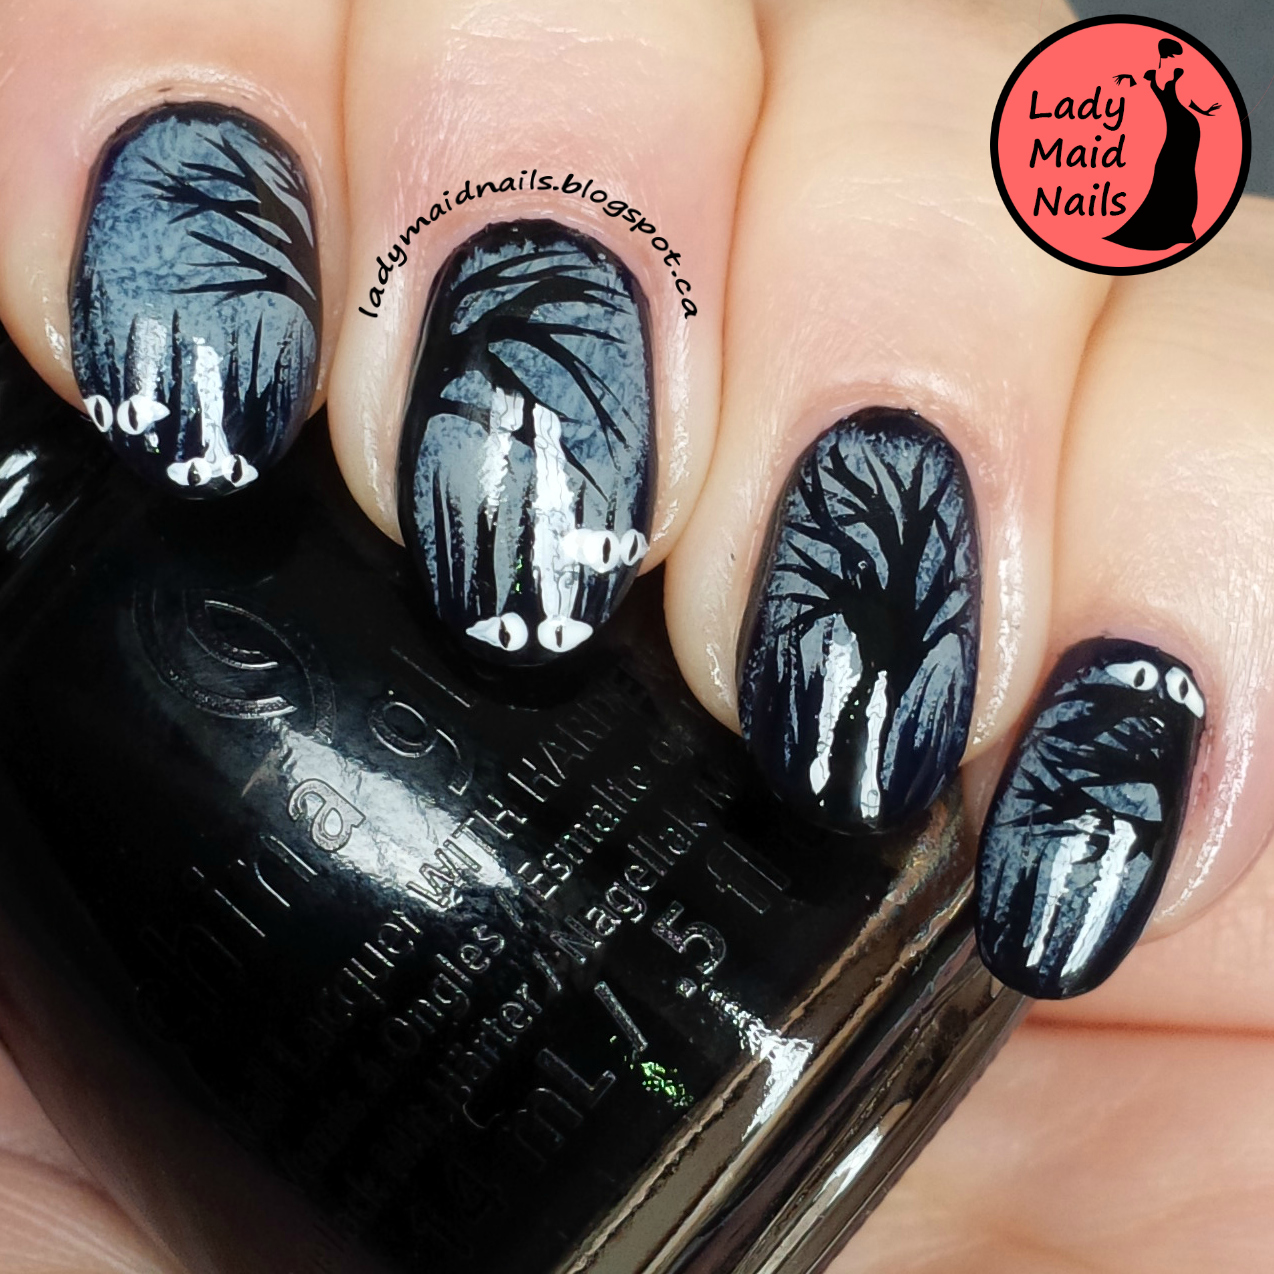 Lady Maid Nails Halloween Nail Art Spooky Forest